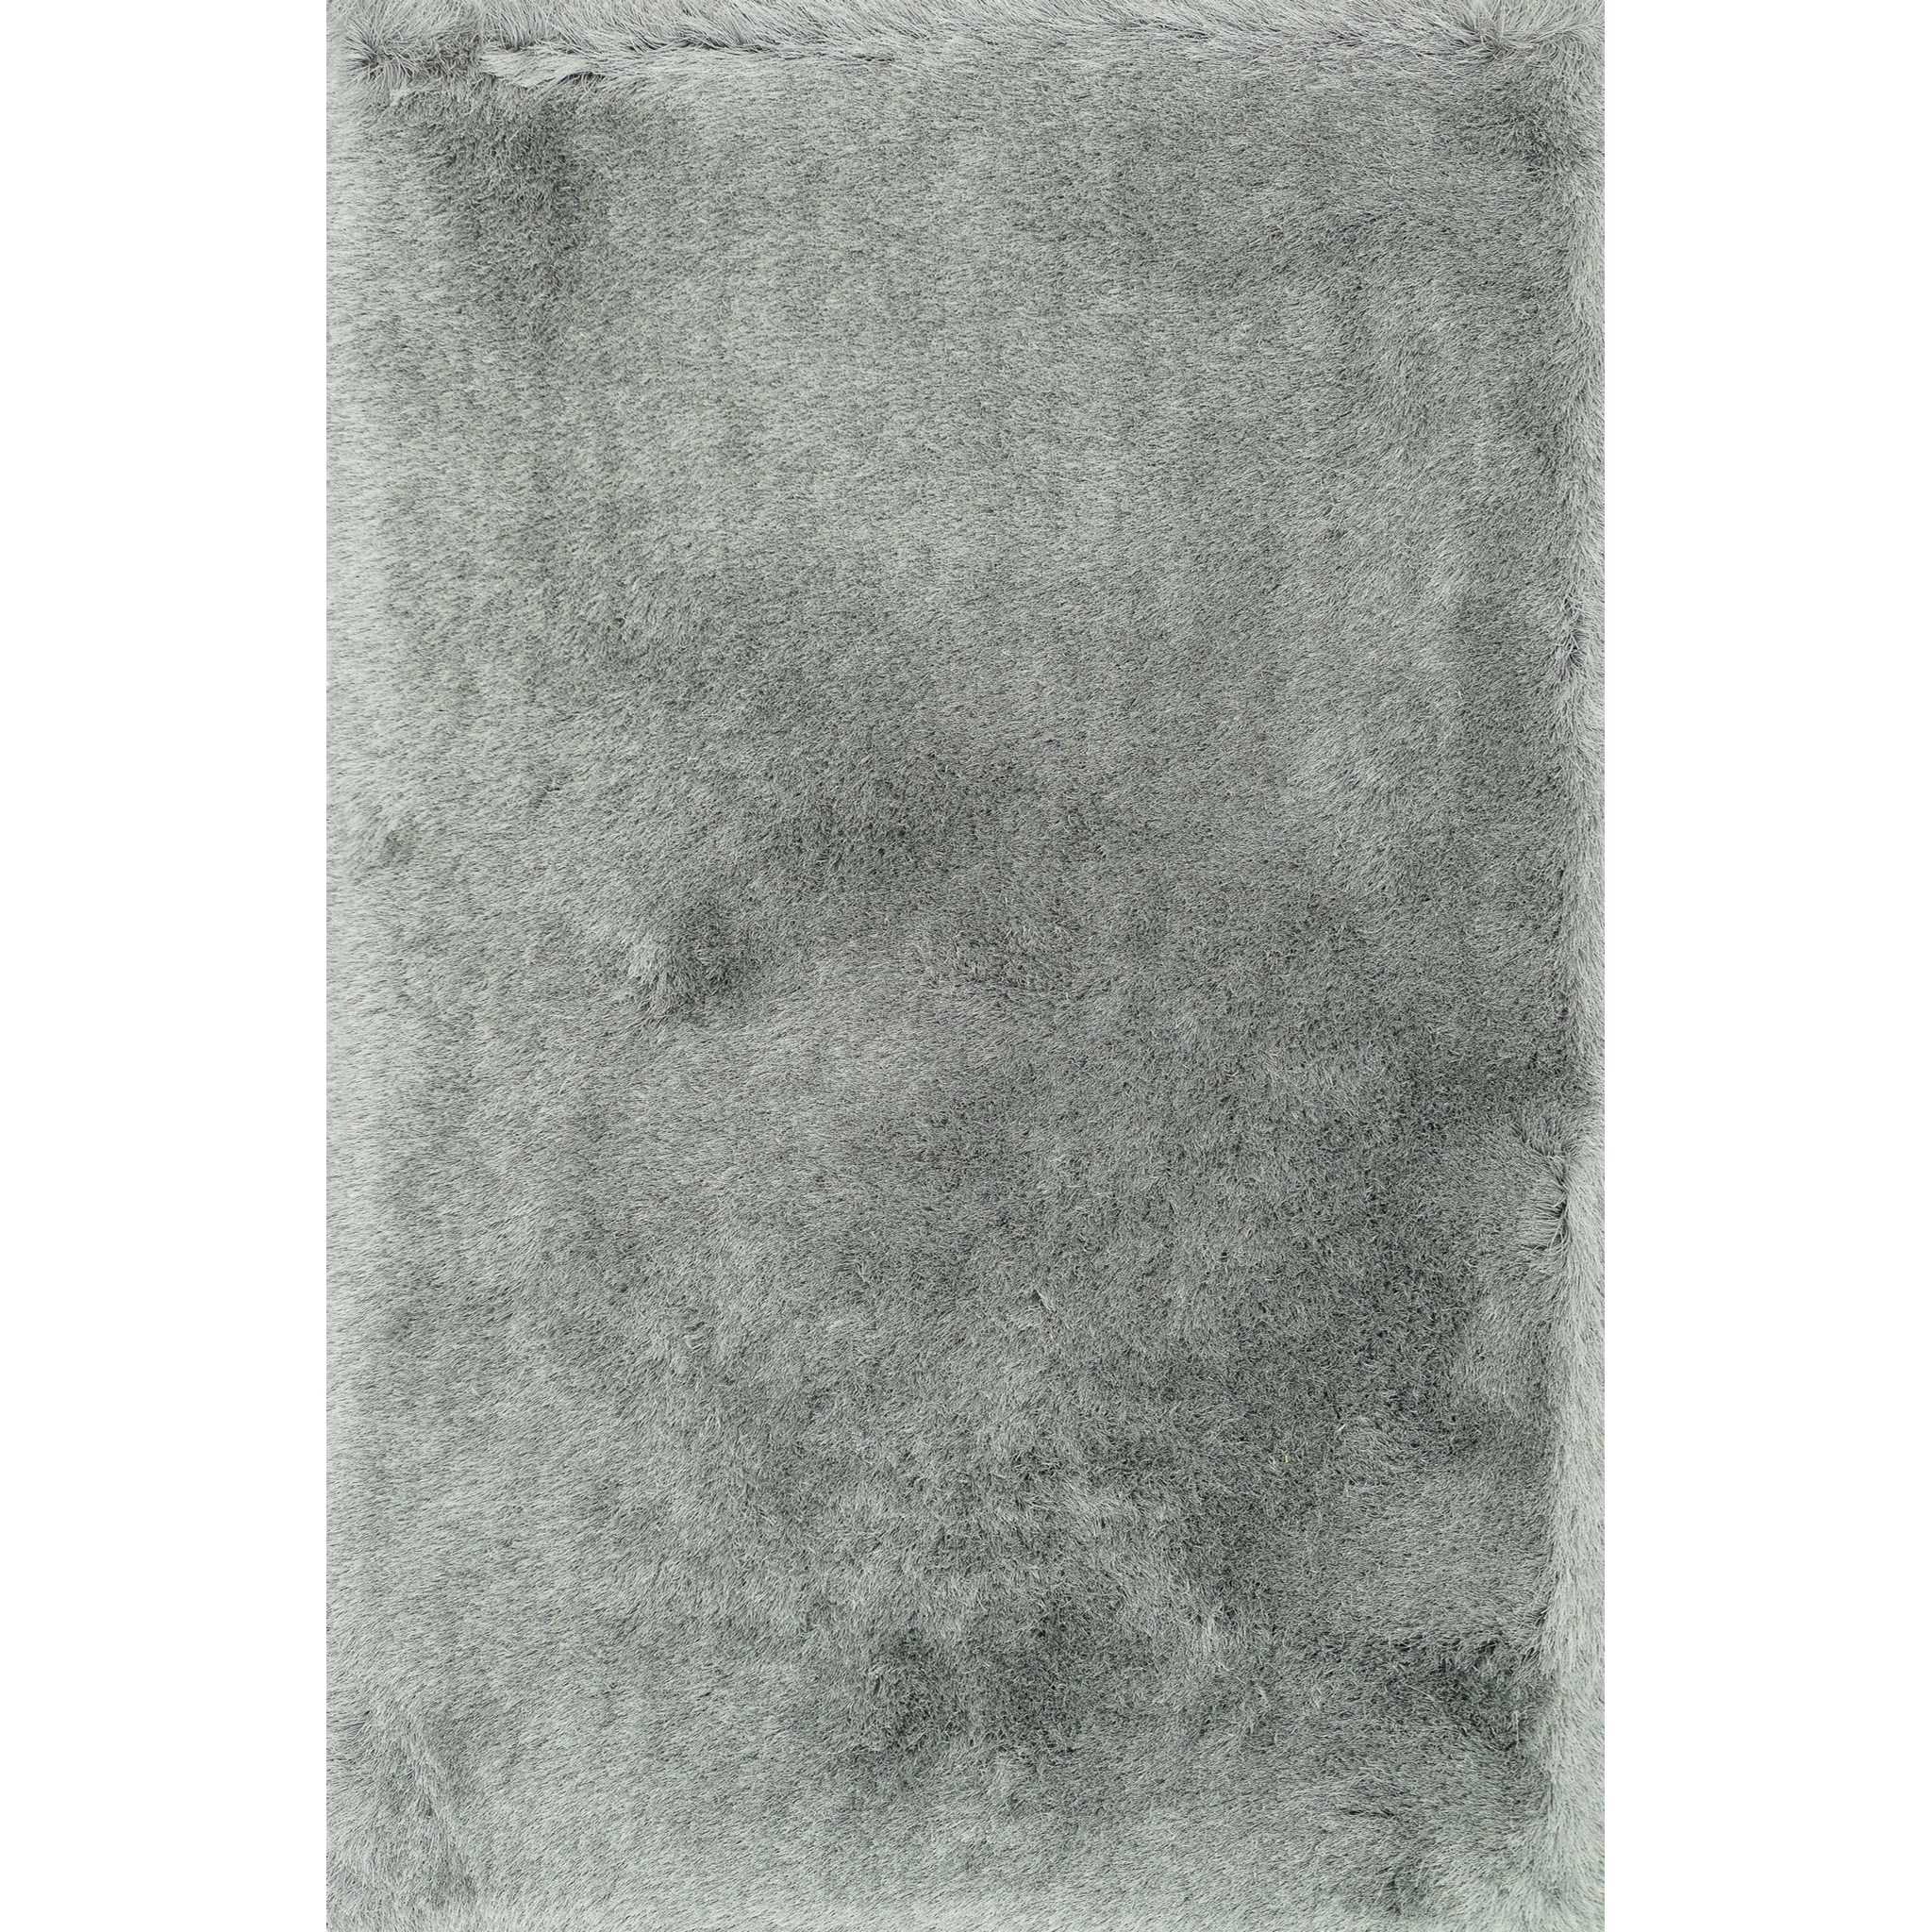 "Allure Shag 5'-0"" x 7'-6"" Area Rug by Loloi Rugs at Sprintz Furniture"